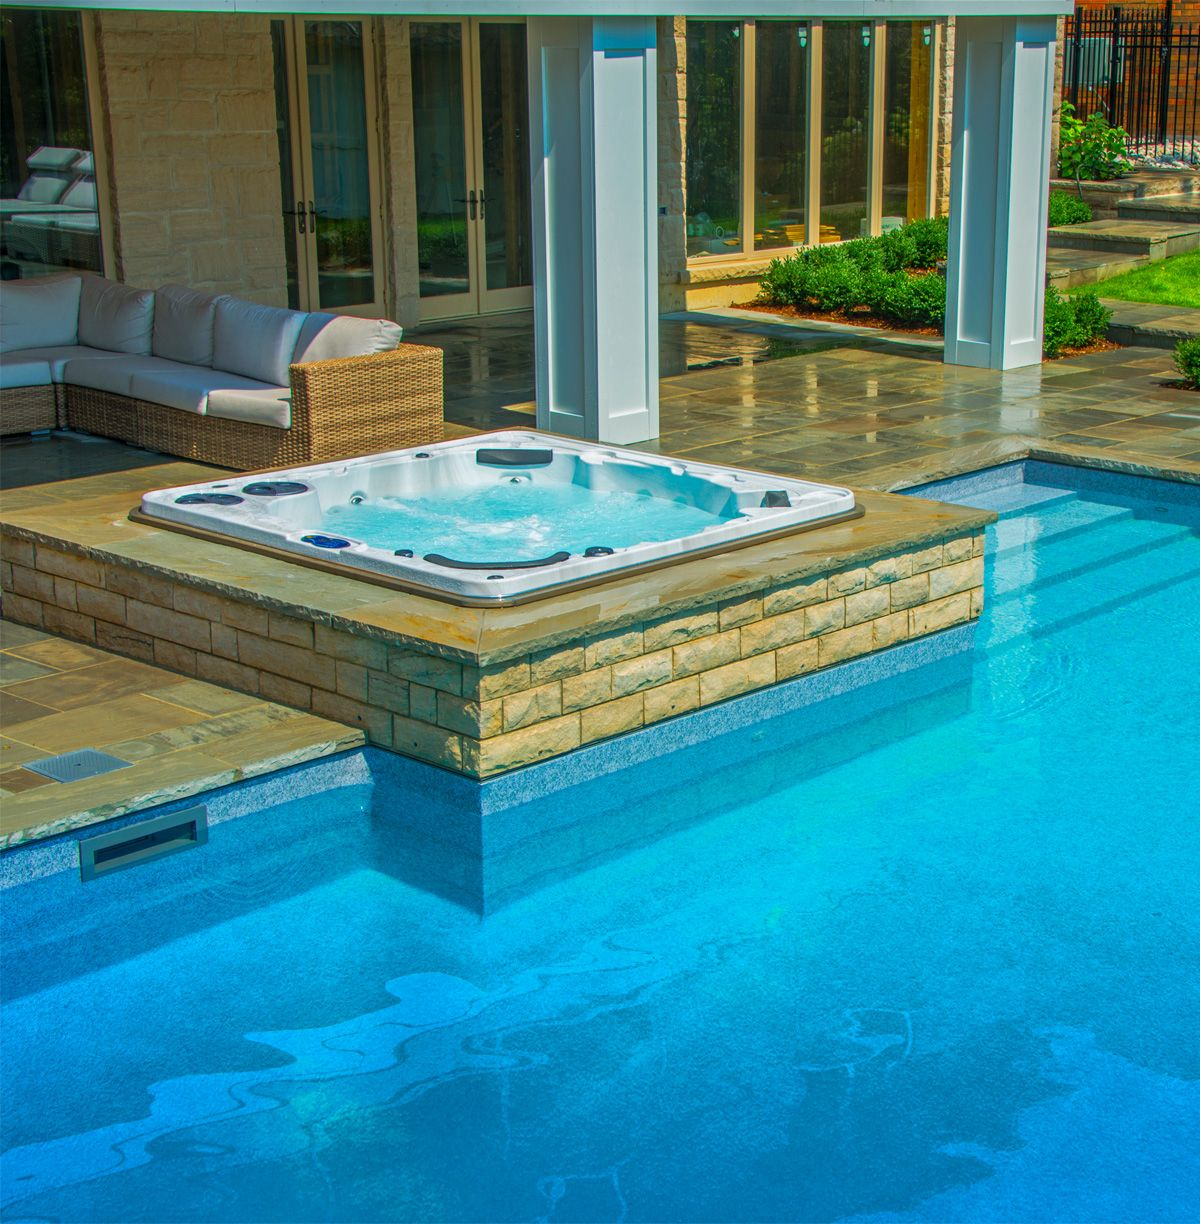 Outdoor Spa, Pool Supplies, Cleaning Hot Tub